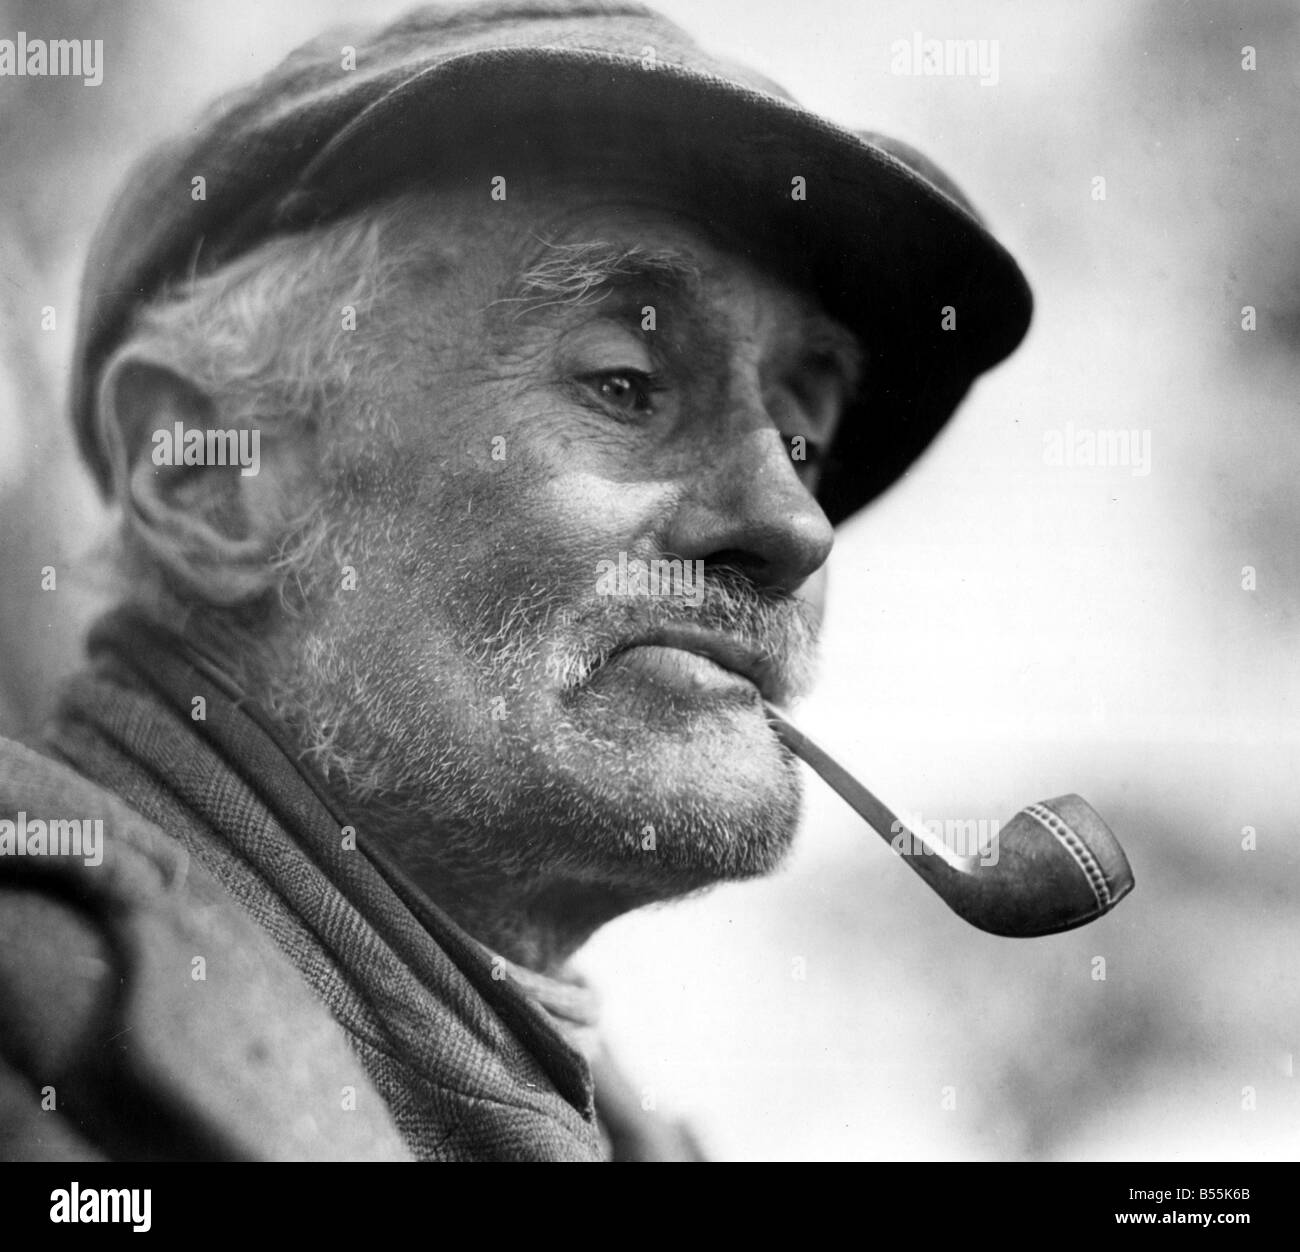 Old man smoking pipe black and white stock photos images alamy